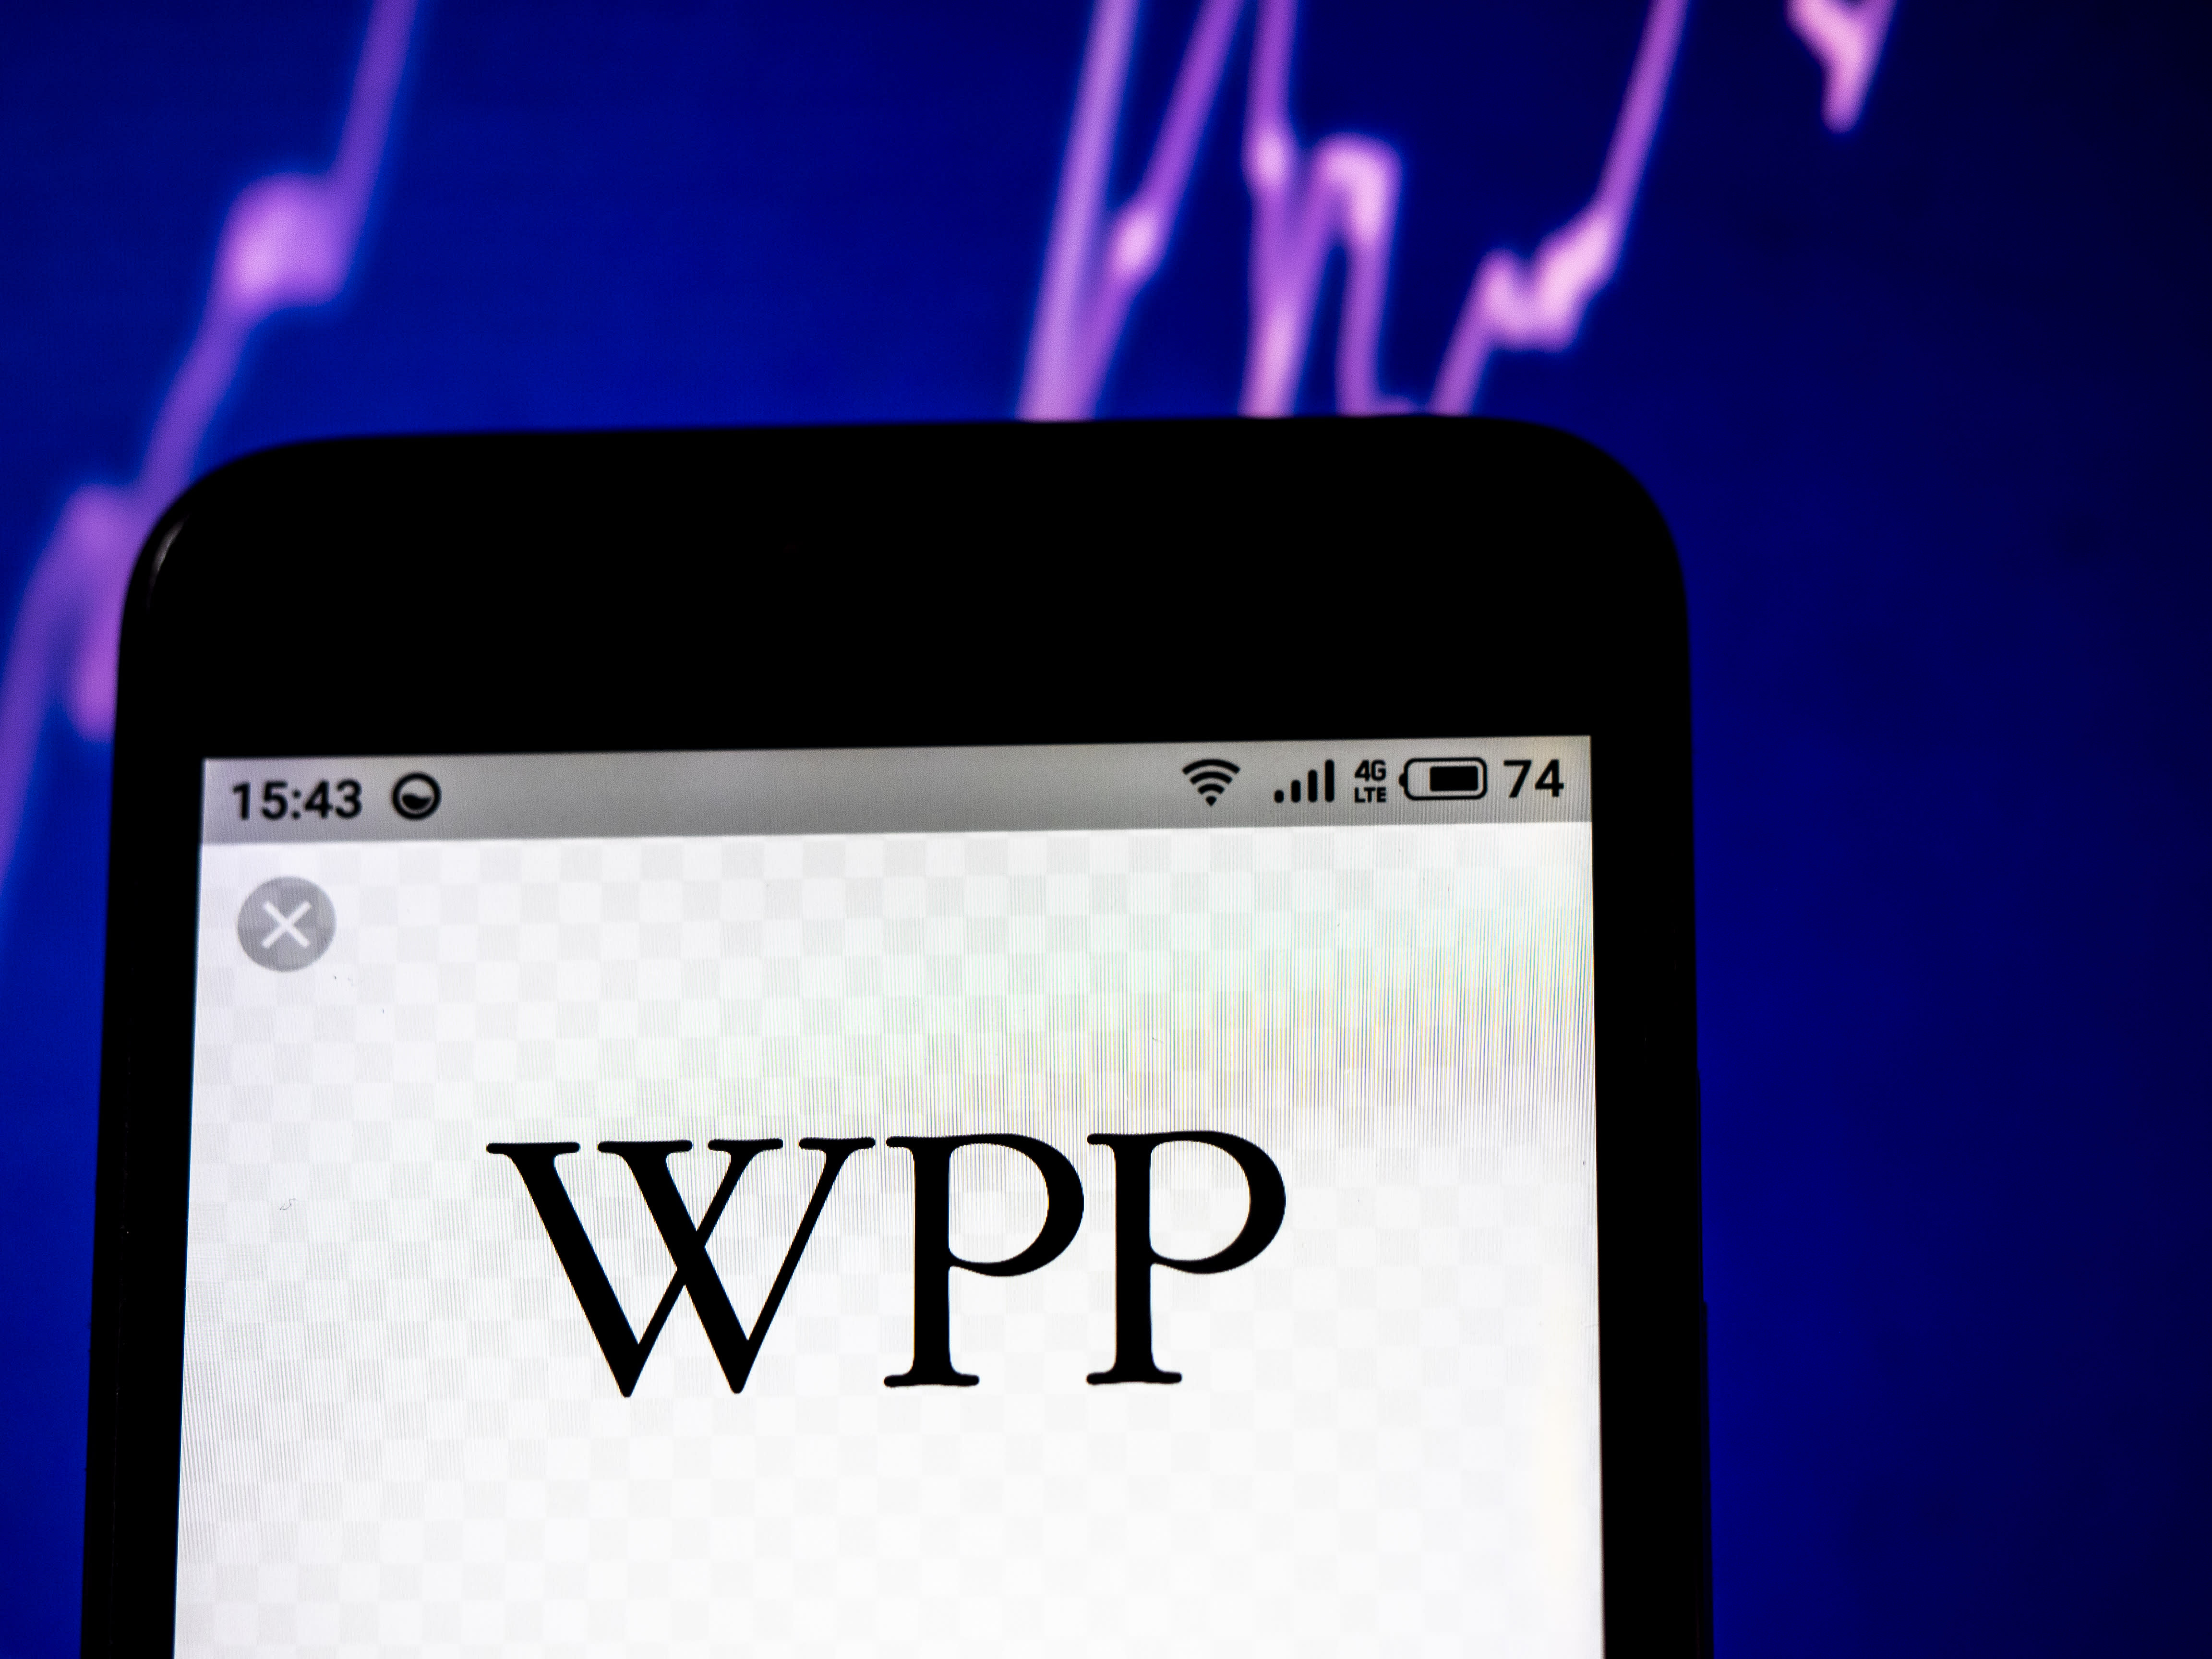 World's largest ad agency WPP pulls 2020 outlook